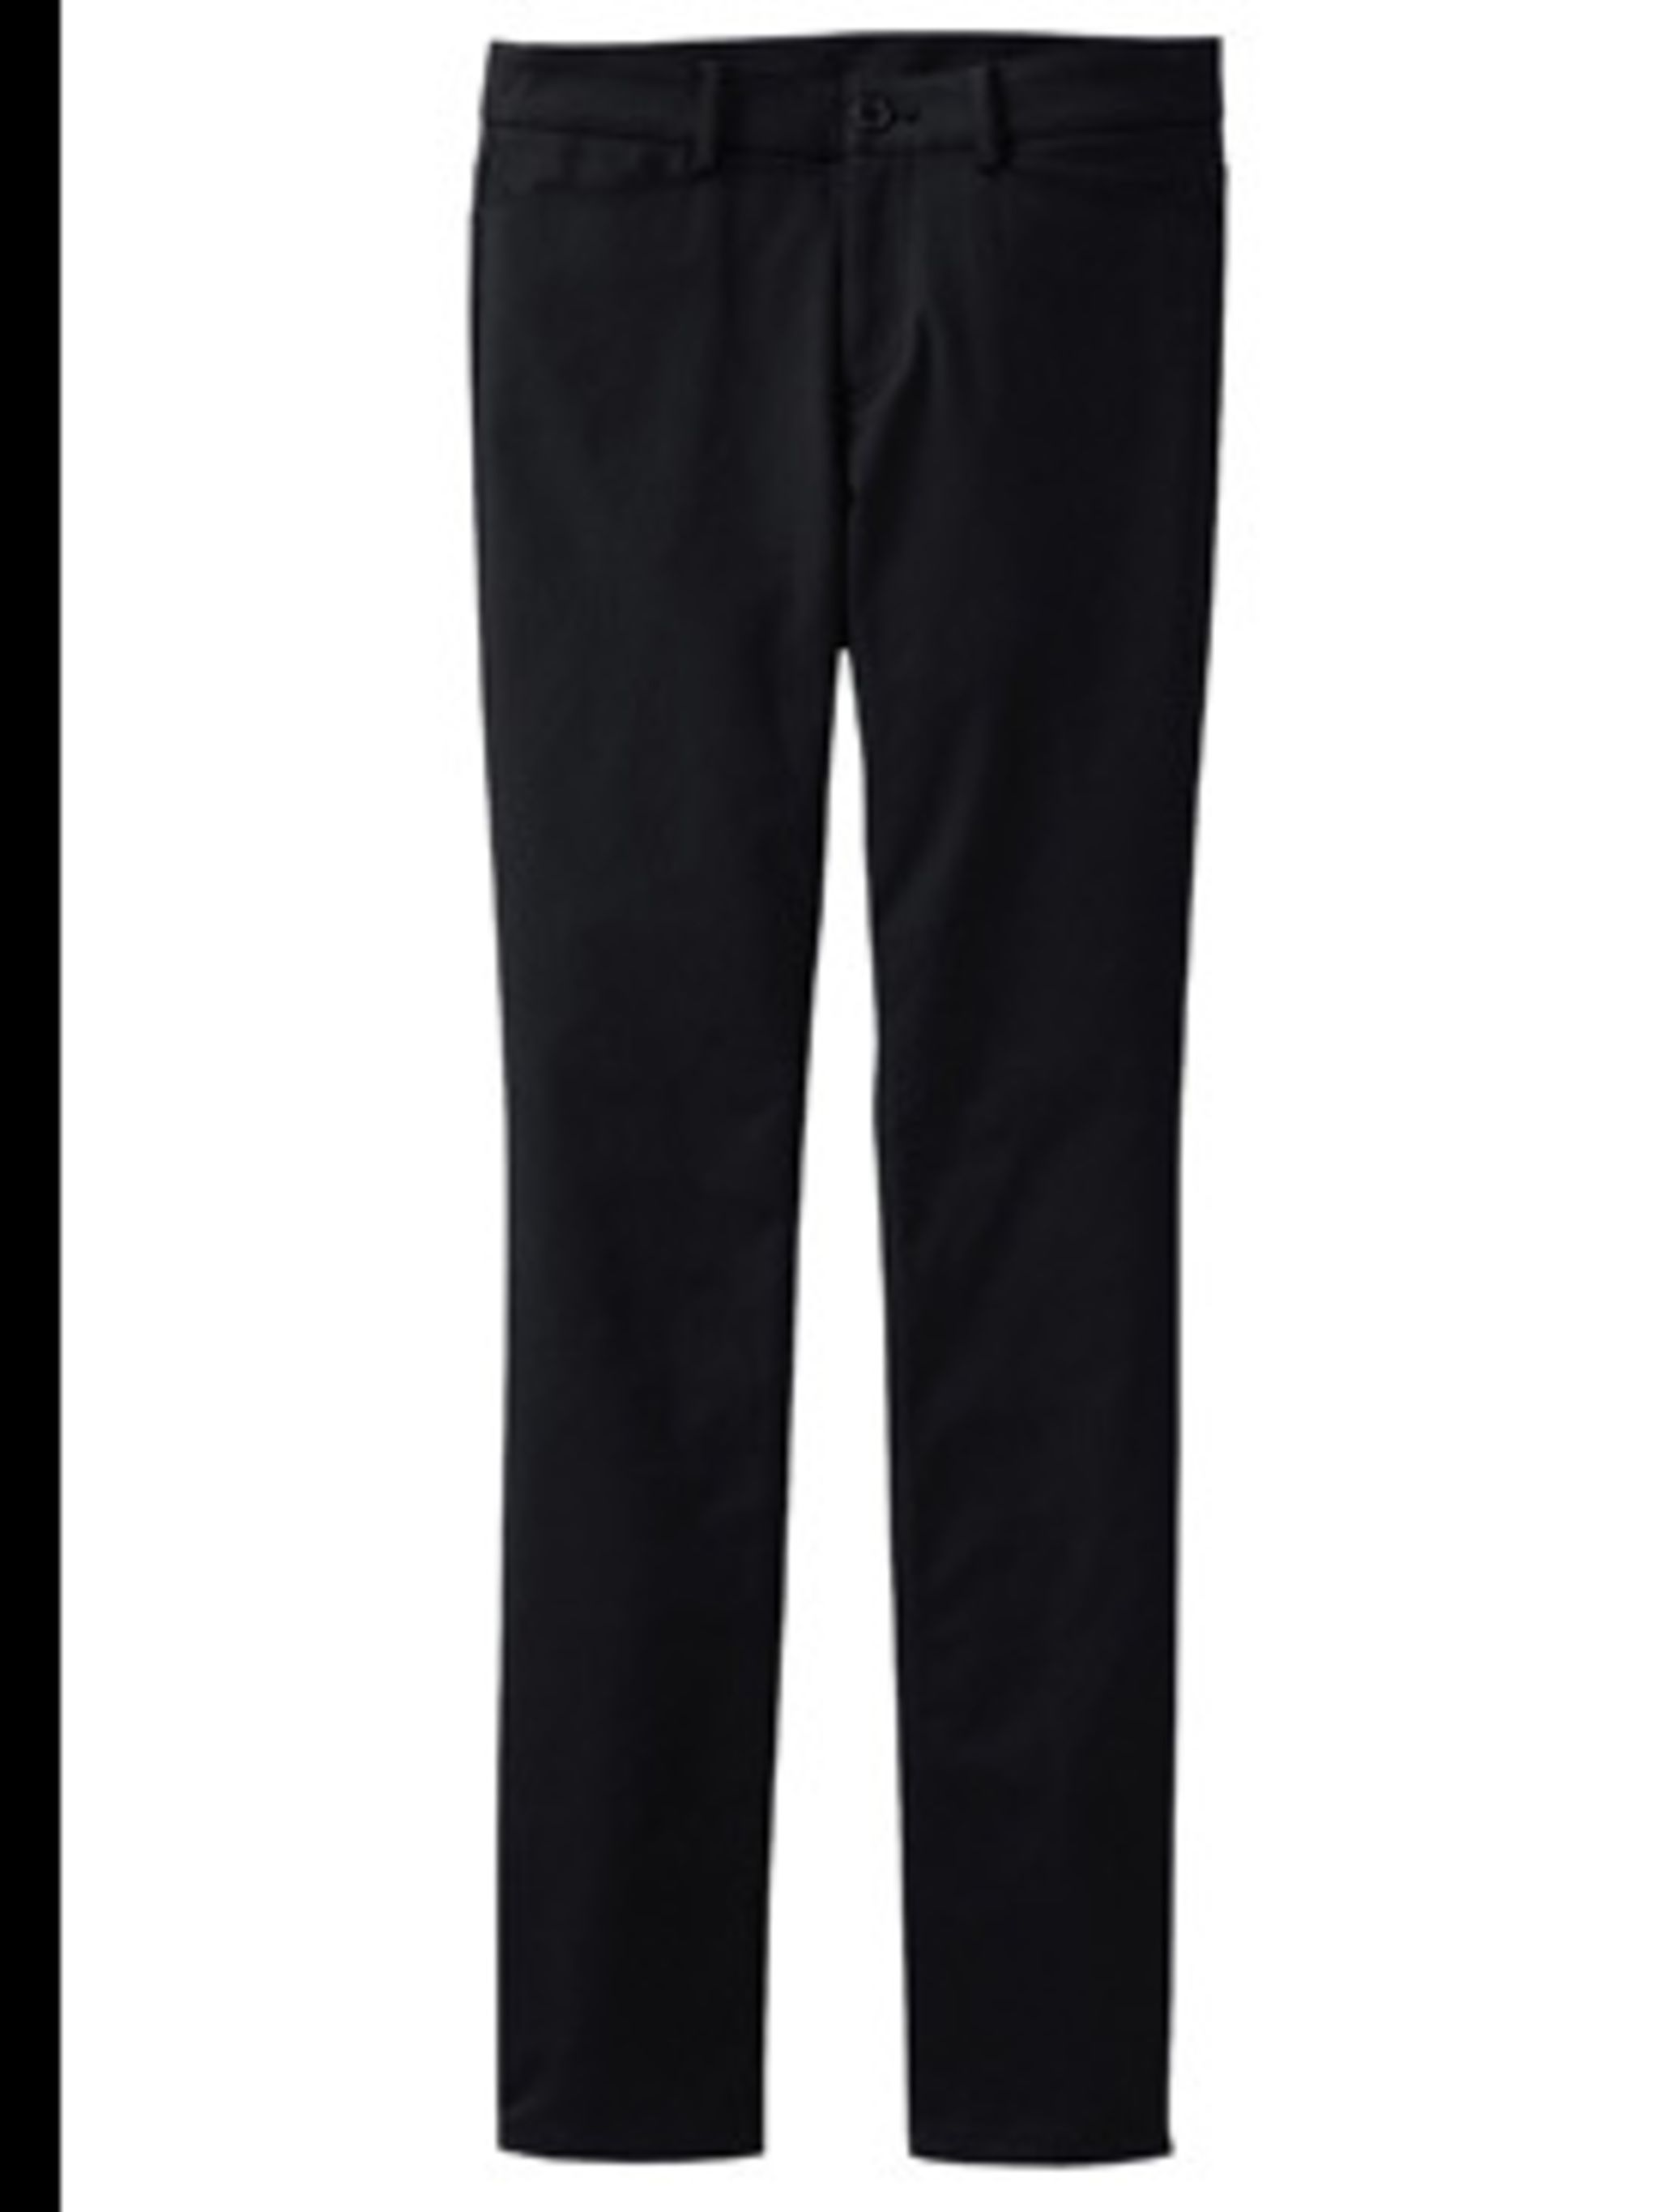 <p>Trousers, £24.99 from Uniqlo. For stockists call 0208 247 9200</p>